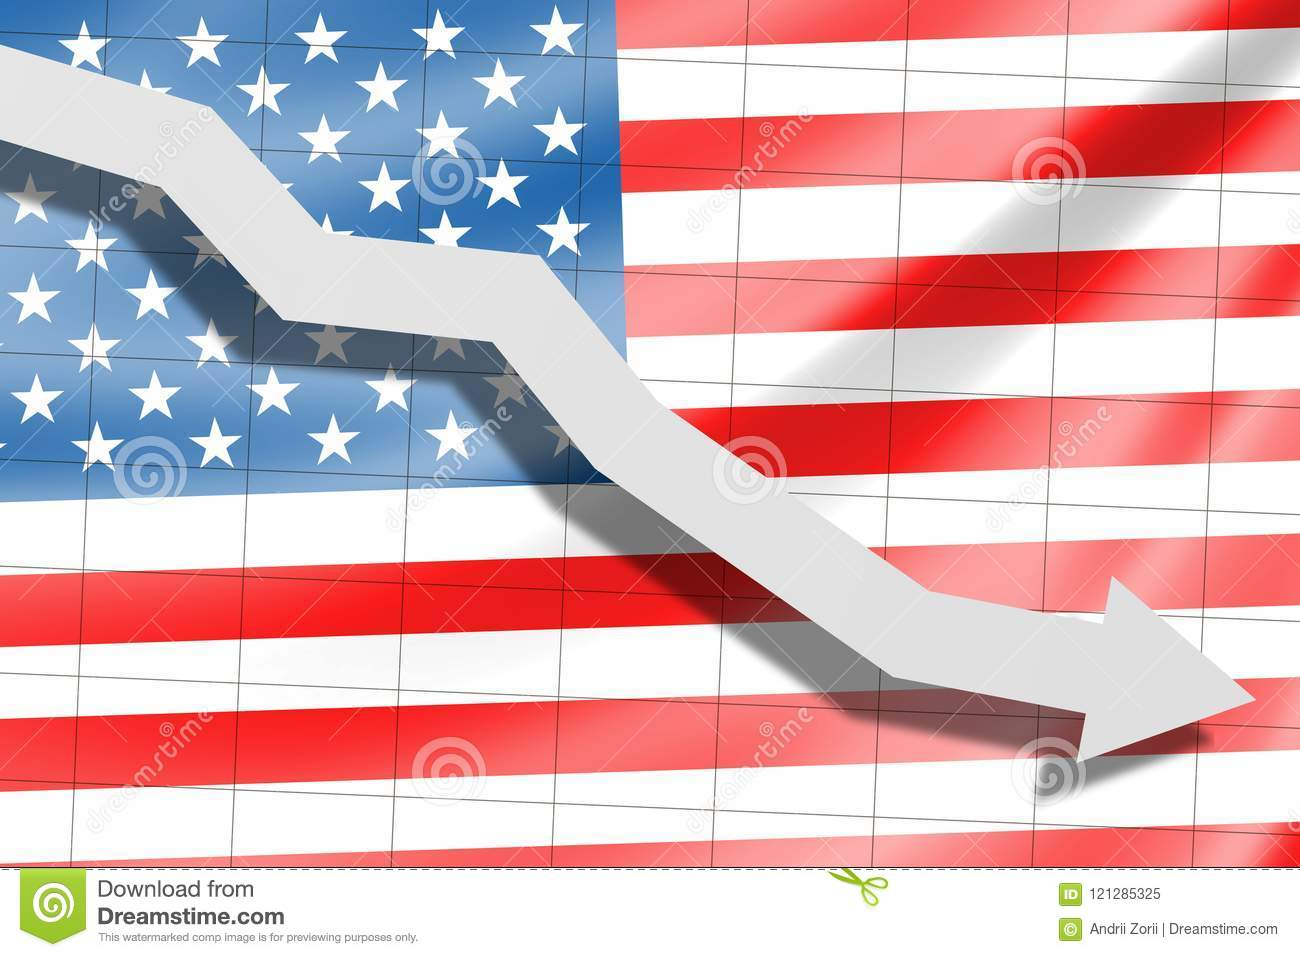 The arrow falls on the background of the American flag